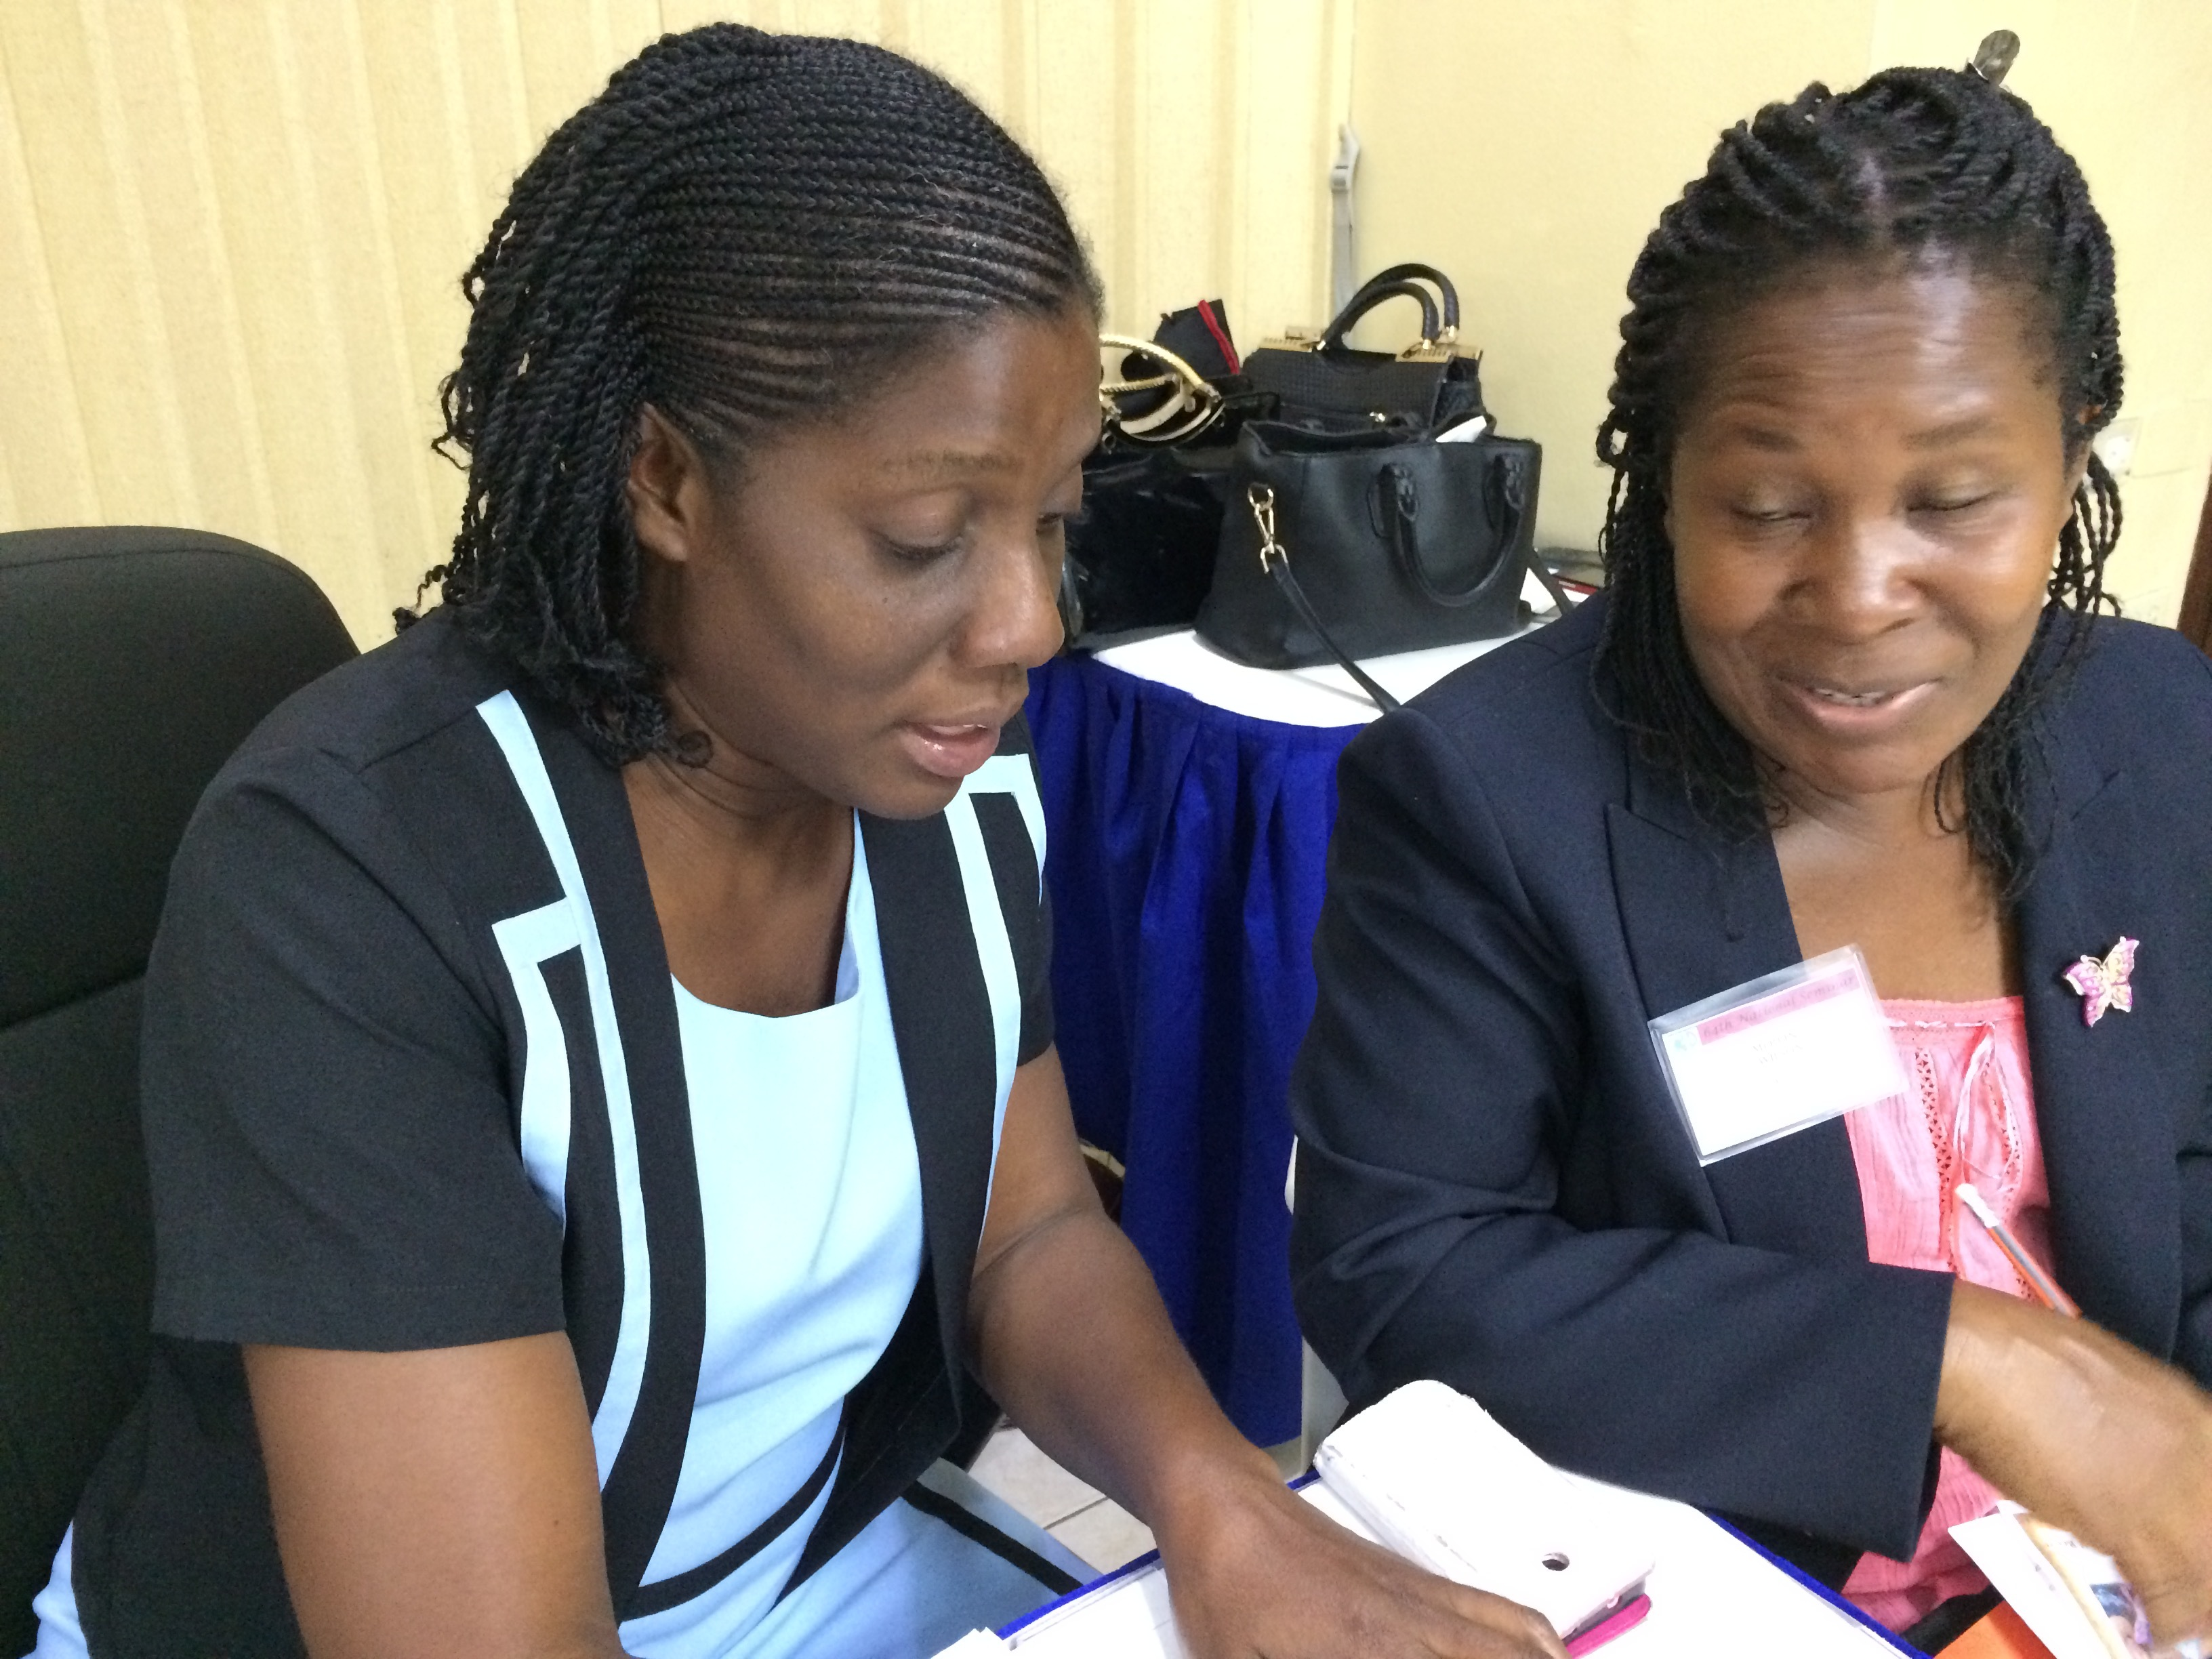 Two female nursing students review notes seated at a table